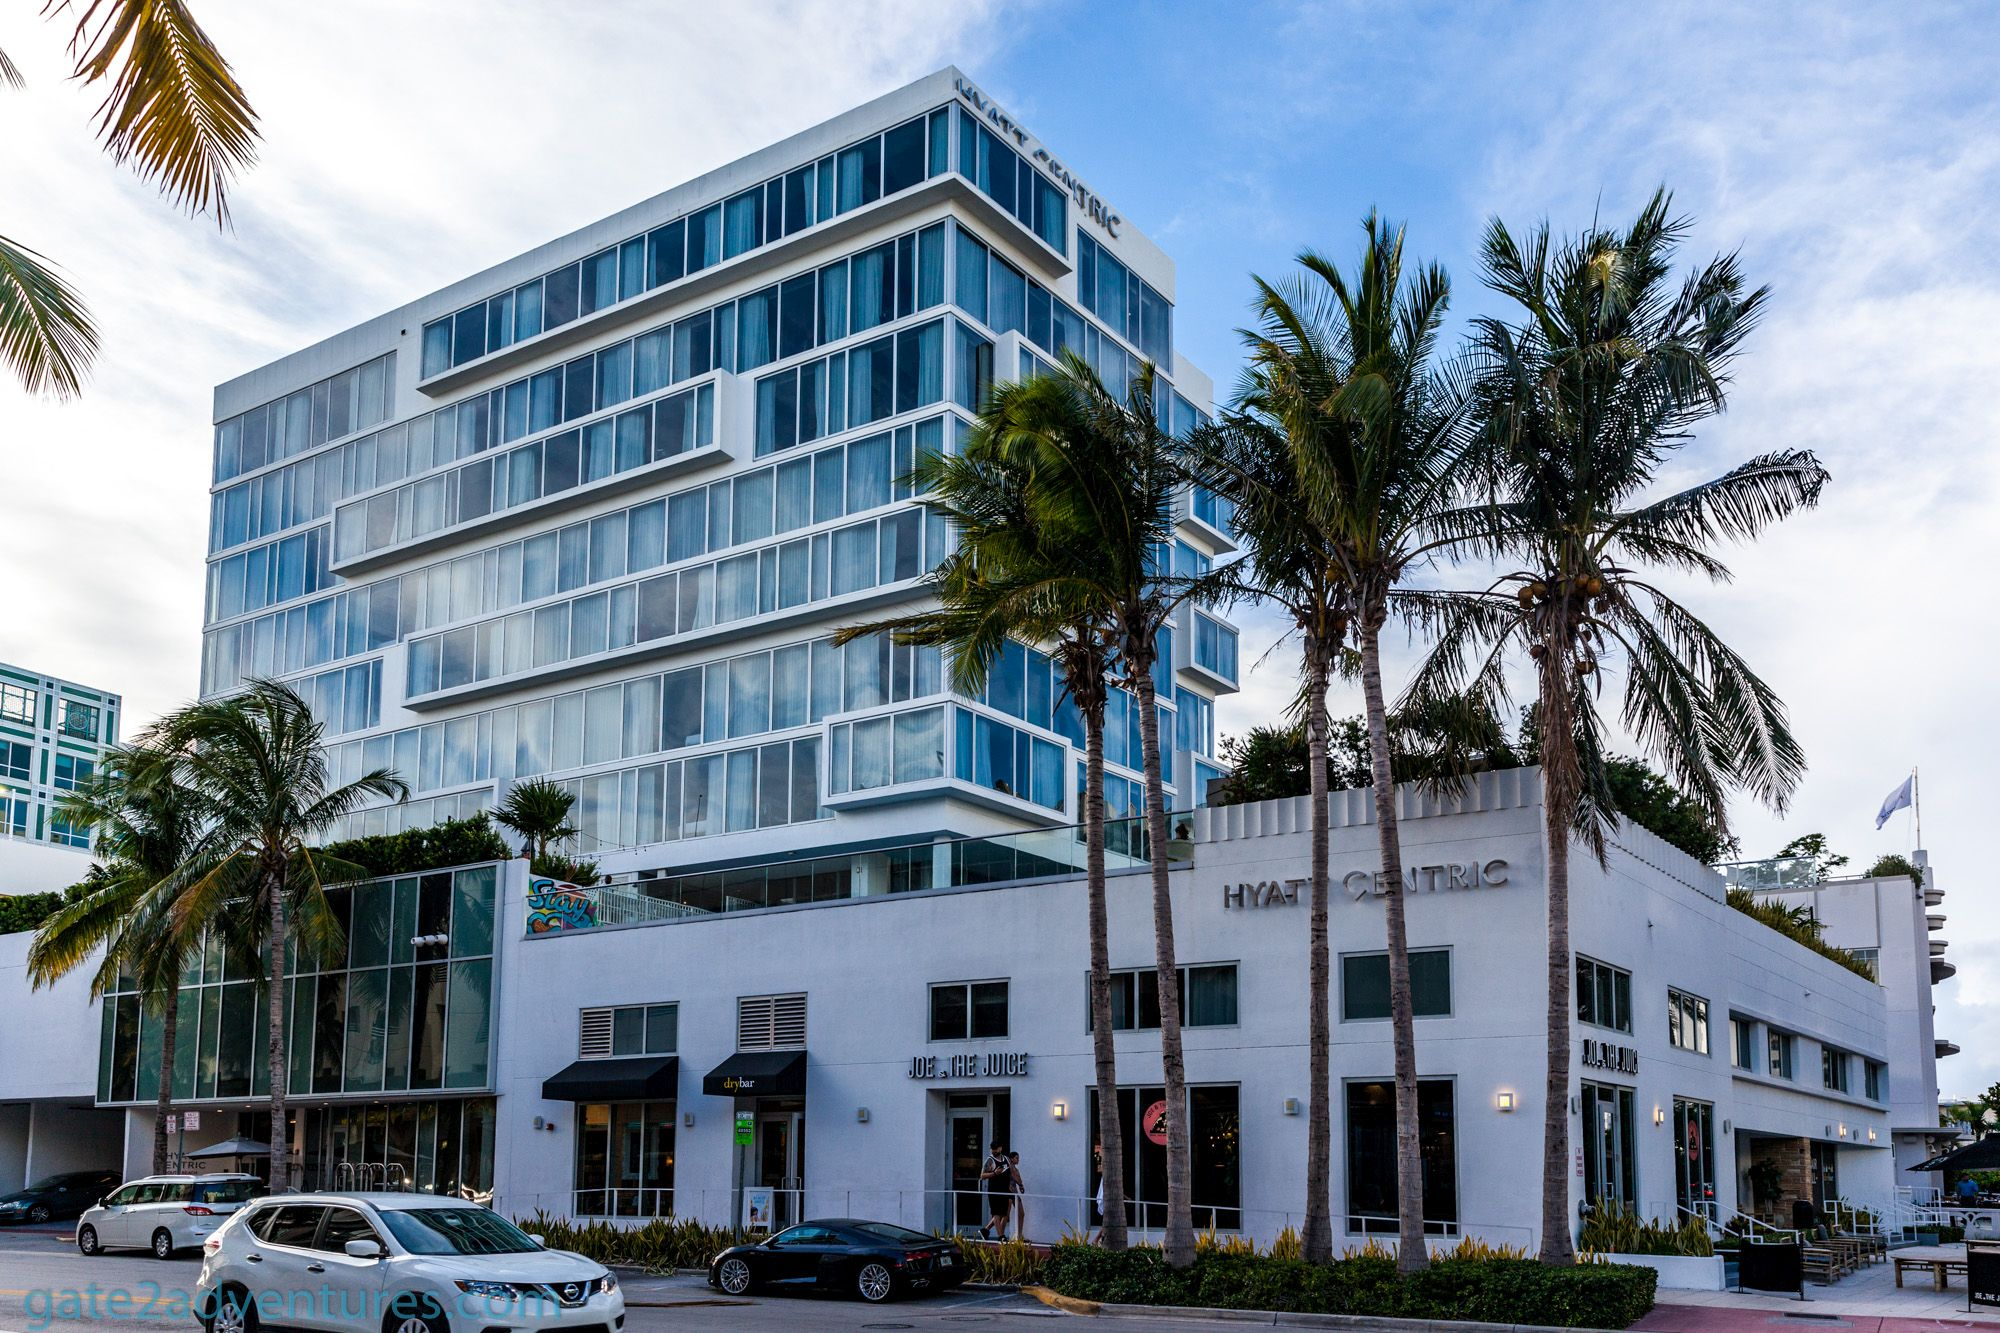 Hotel Review: Hyatt Centric South Beach Miami